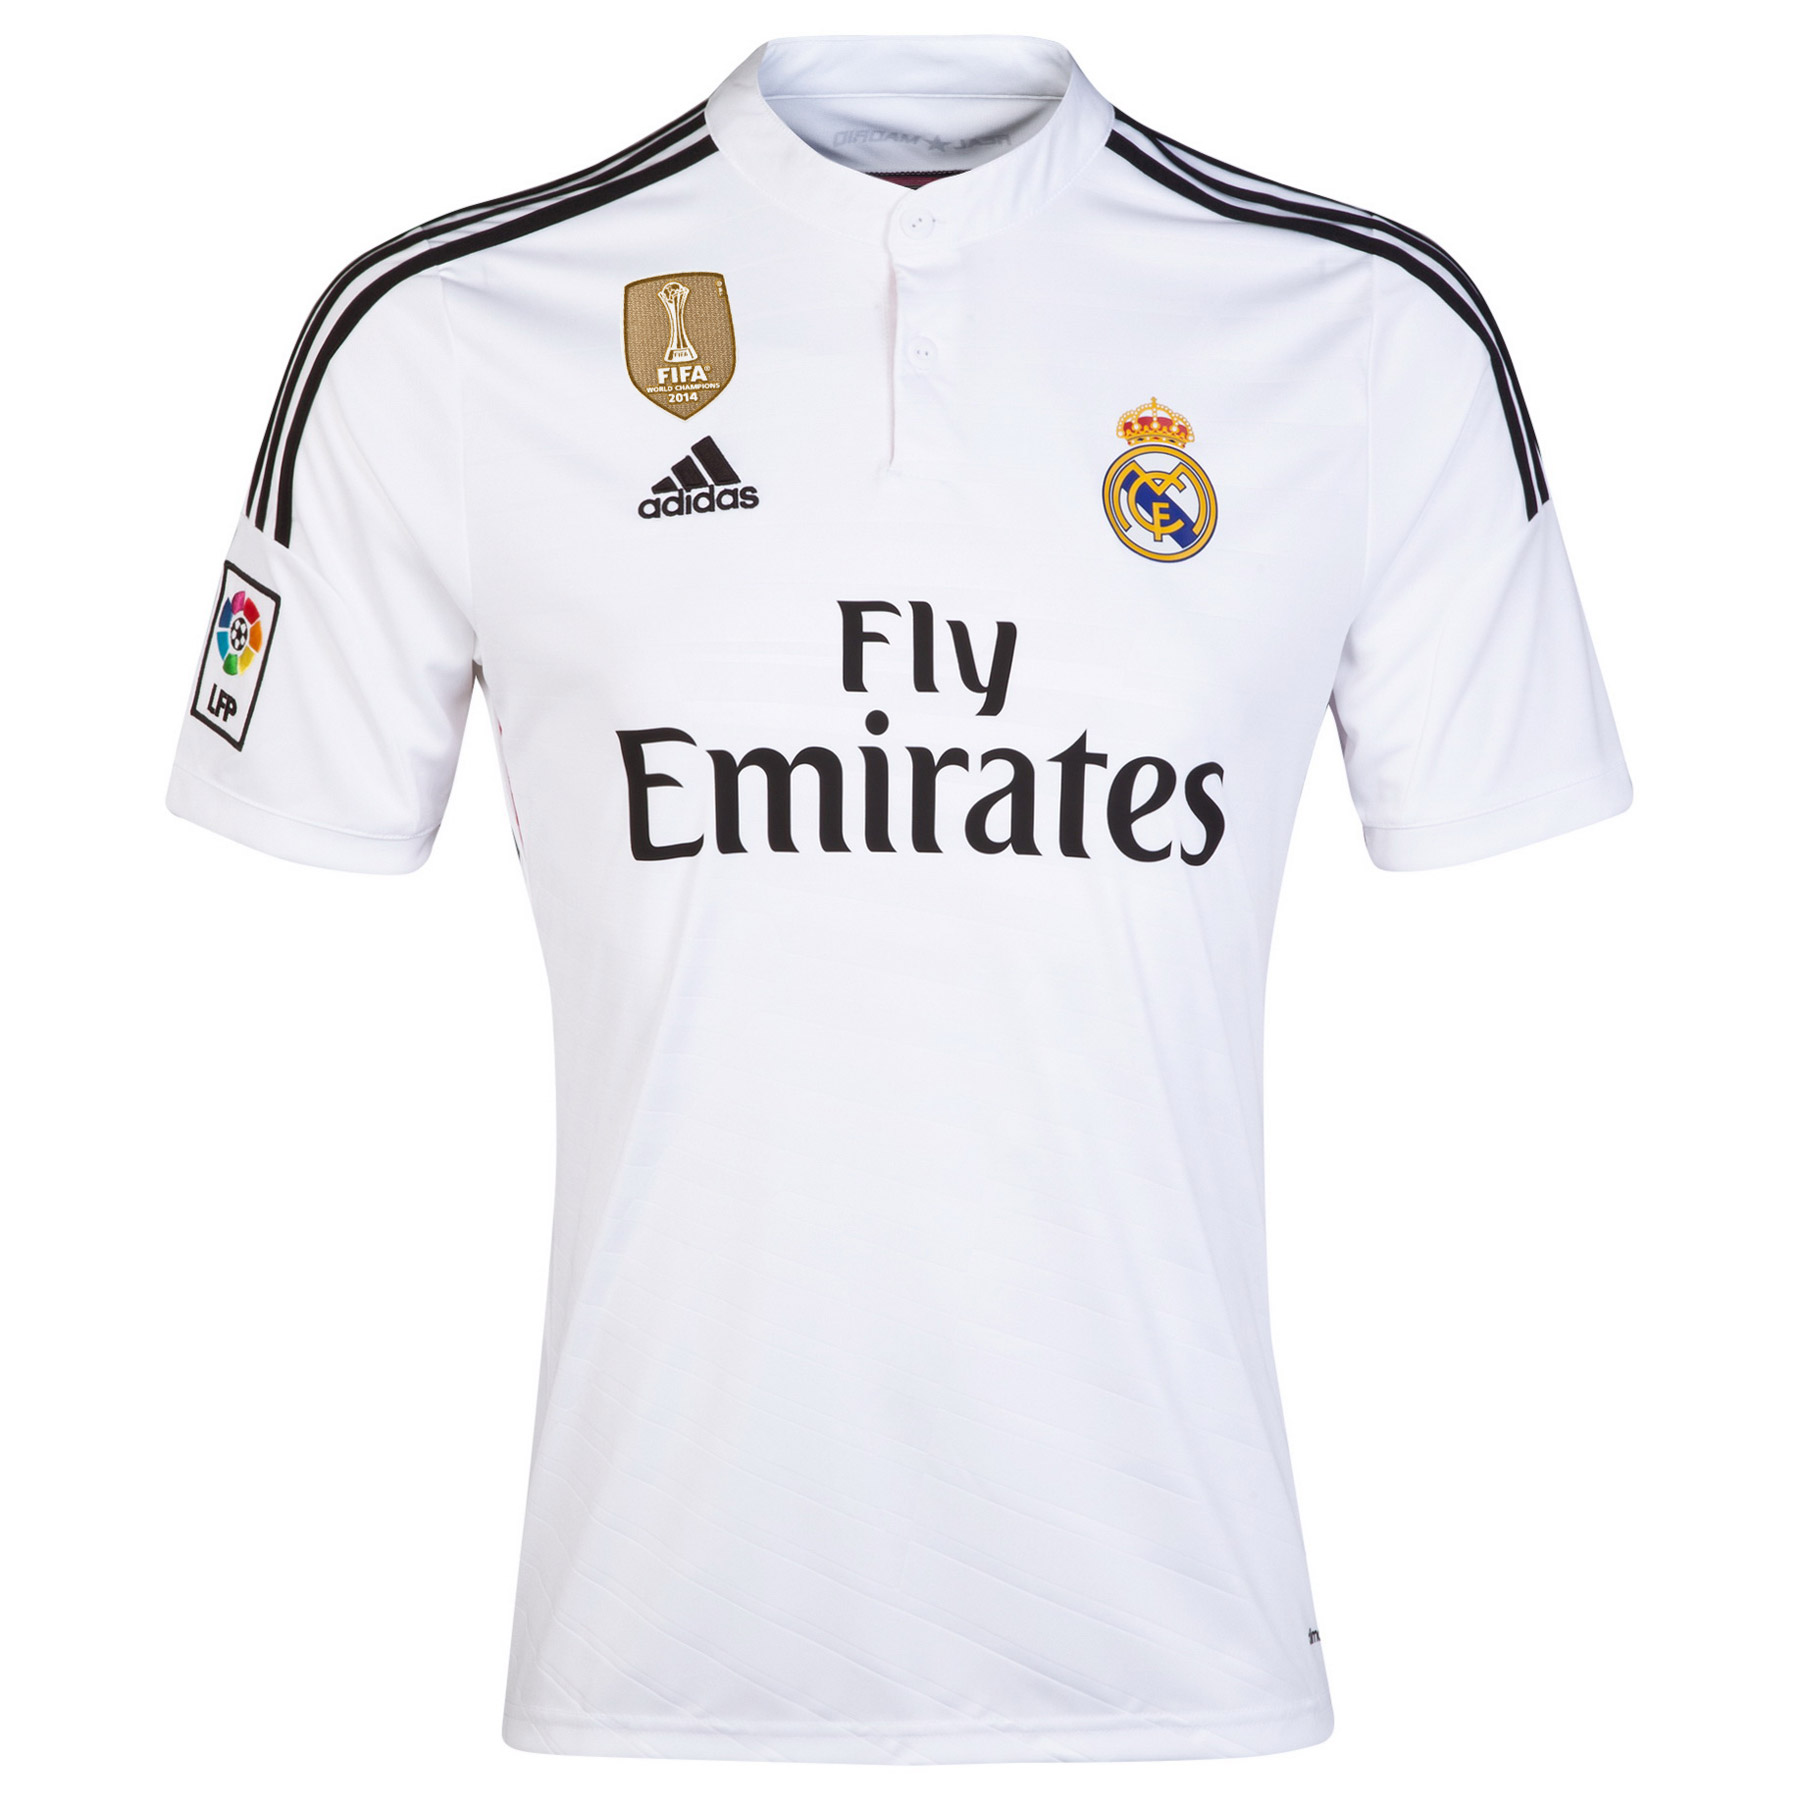 Real Madrid Home FIFA World Champions 2014 Shirt White